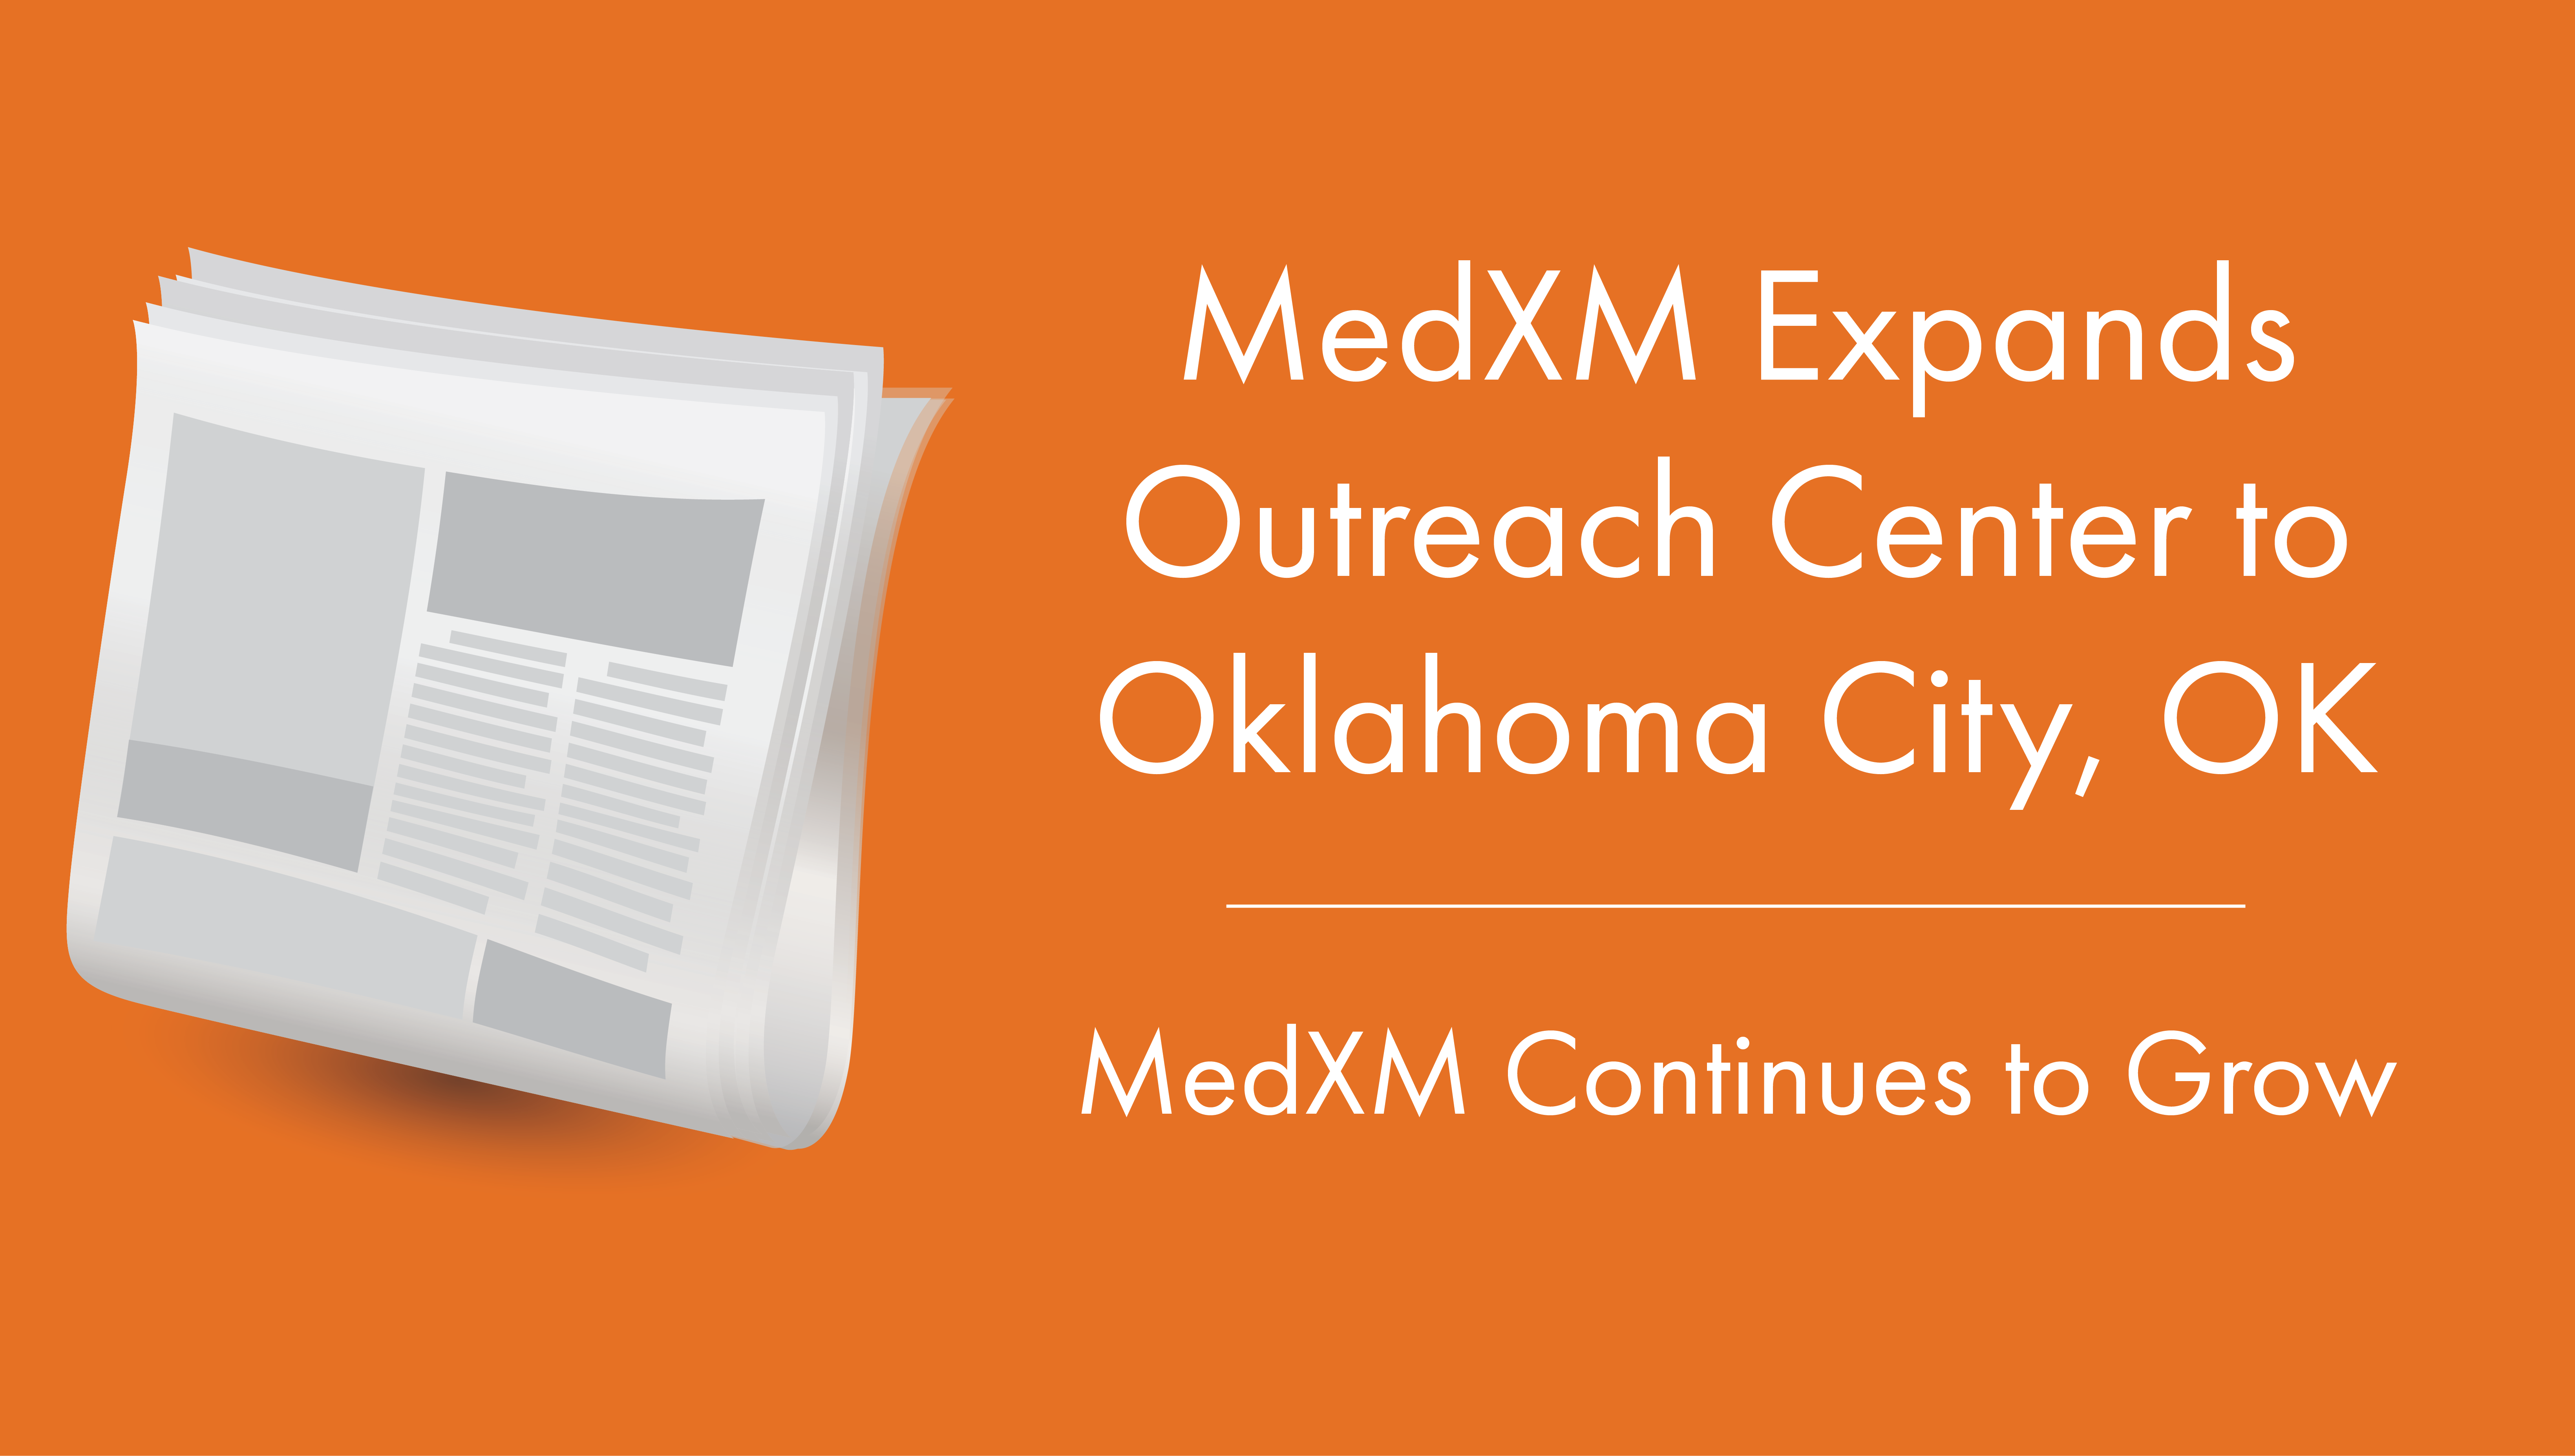 MedXM Outreach Center Expands to Oklahoma City, OK